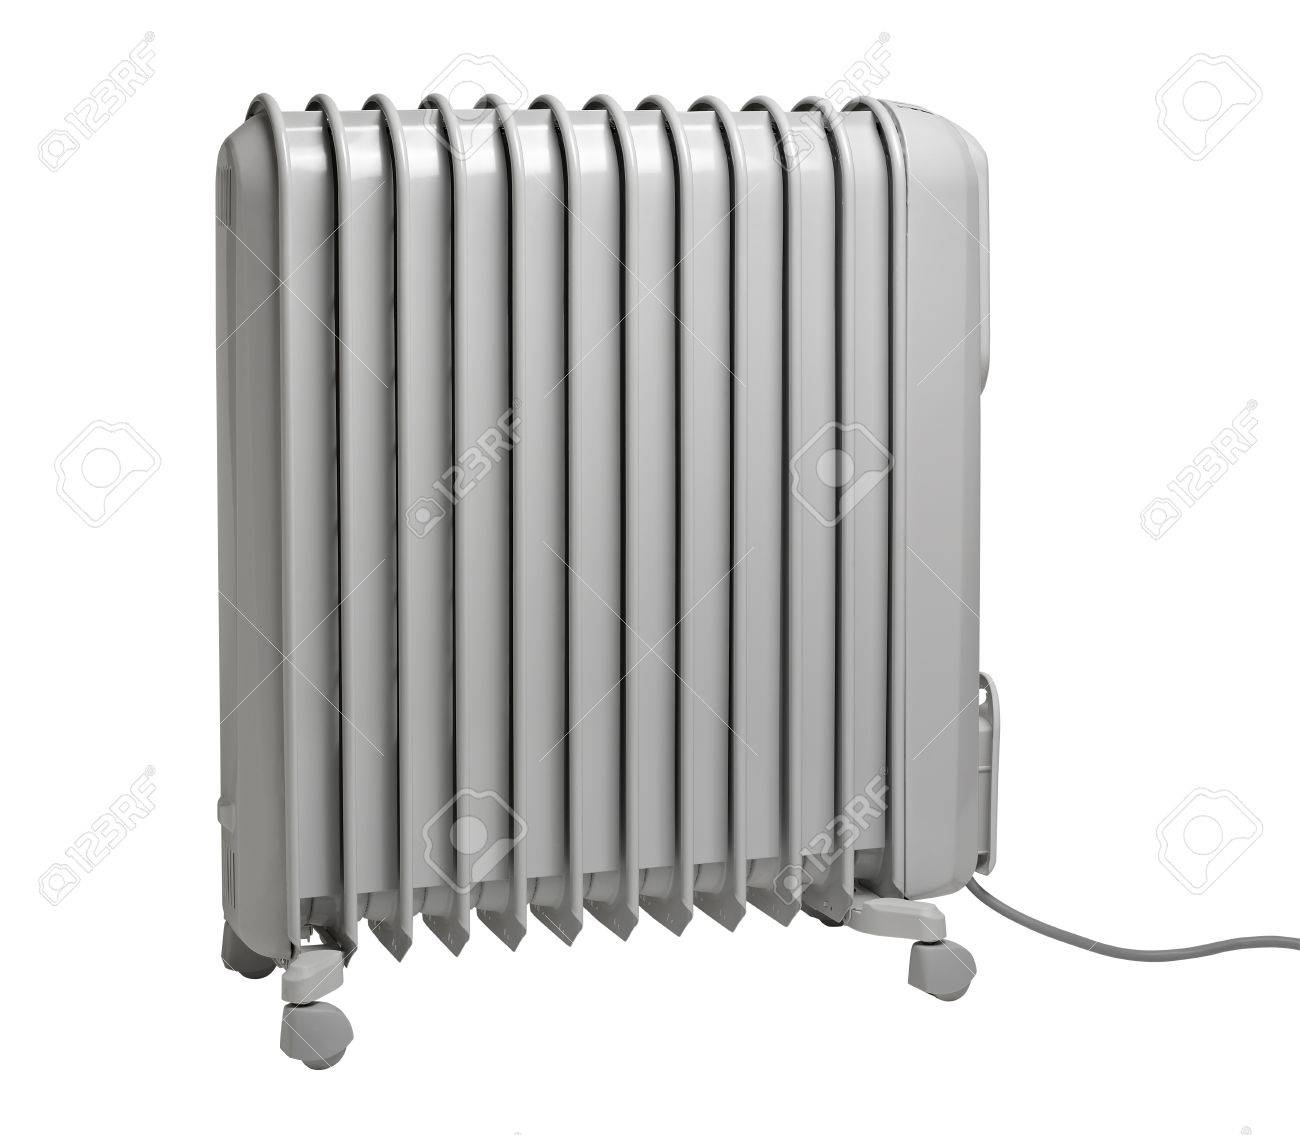 Oil radiator isolated on the white background (CLIPPING PATH) Stock Photo - 12413954